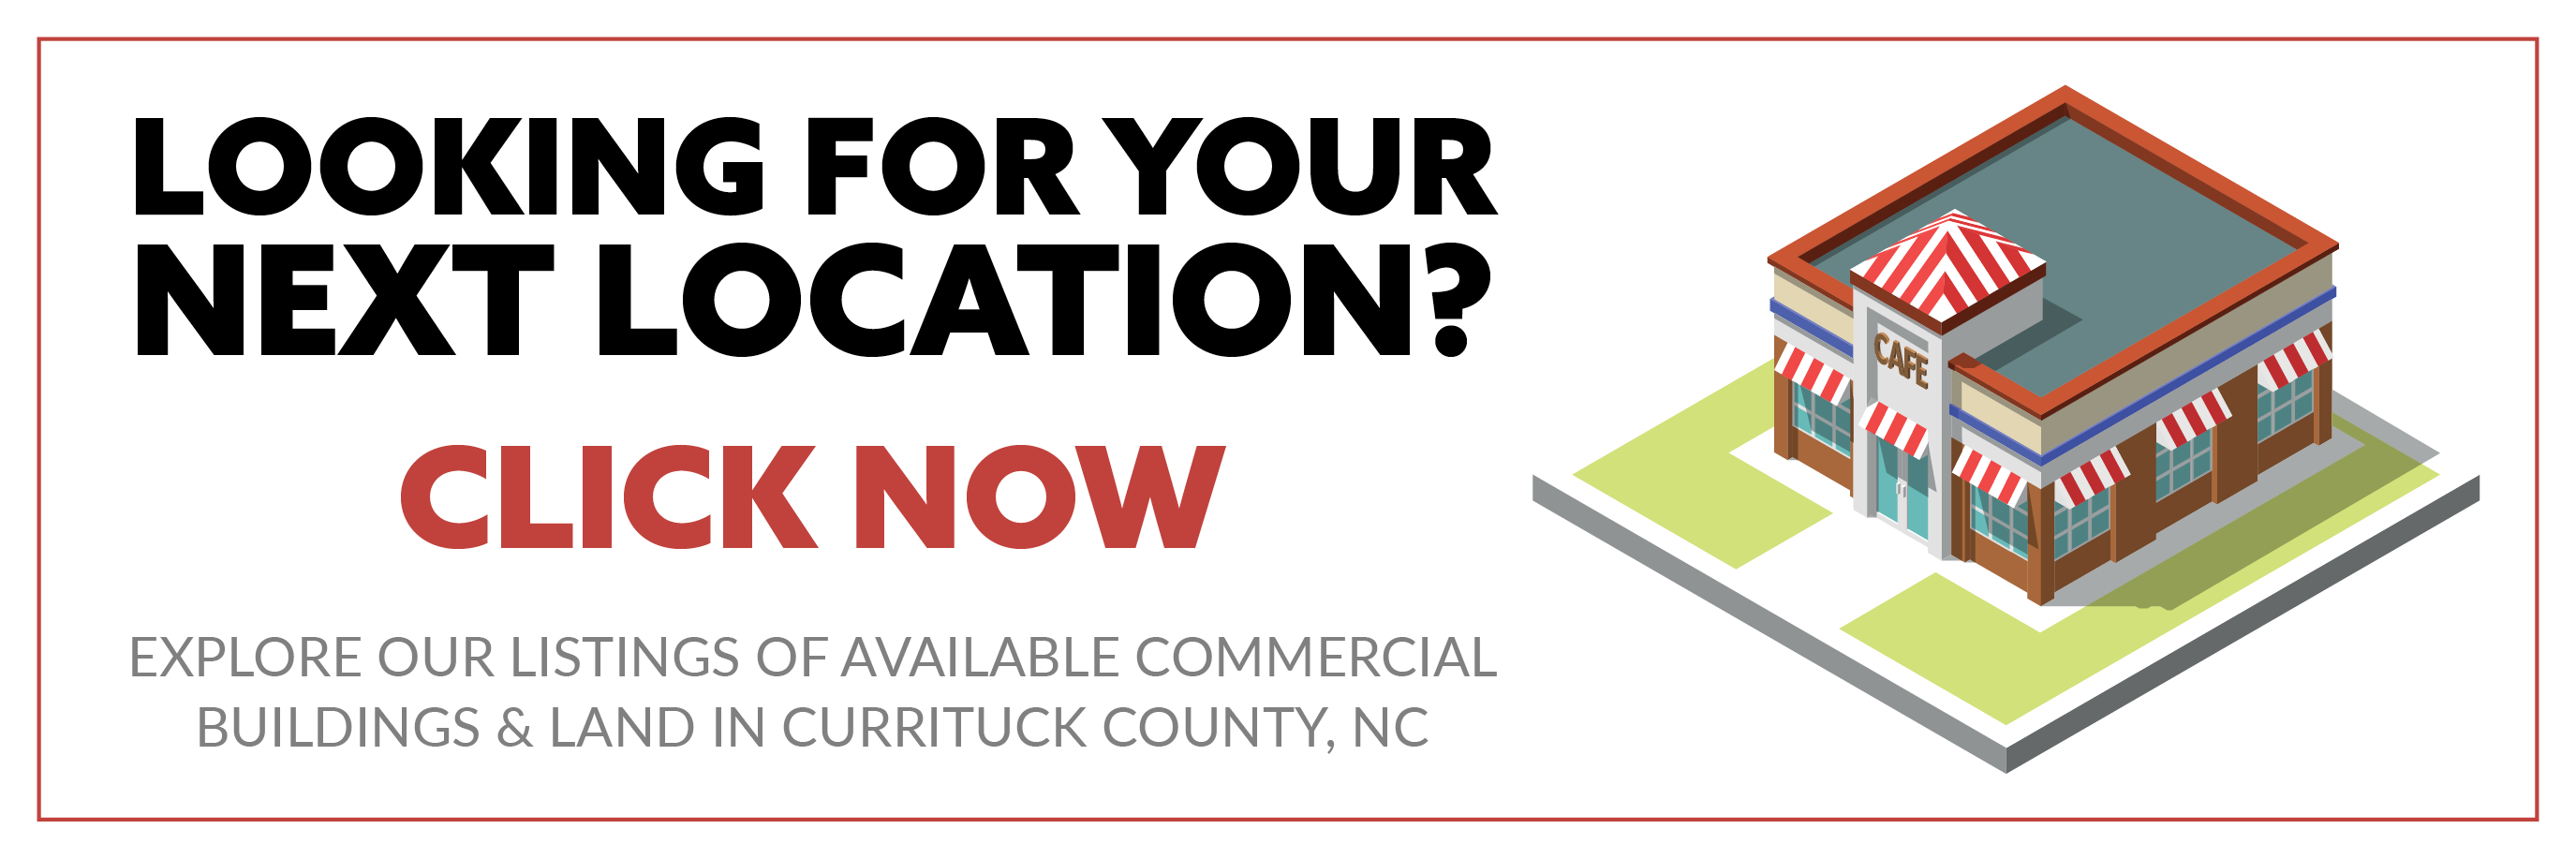 Currituck County NC Commercial Property CTA